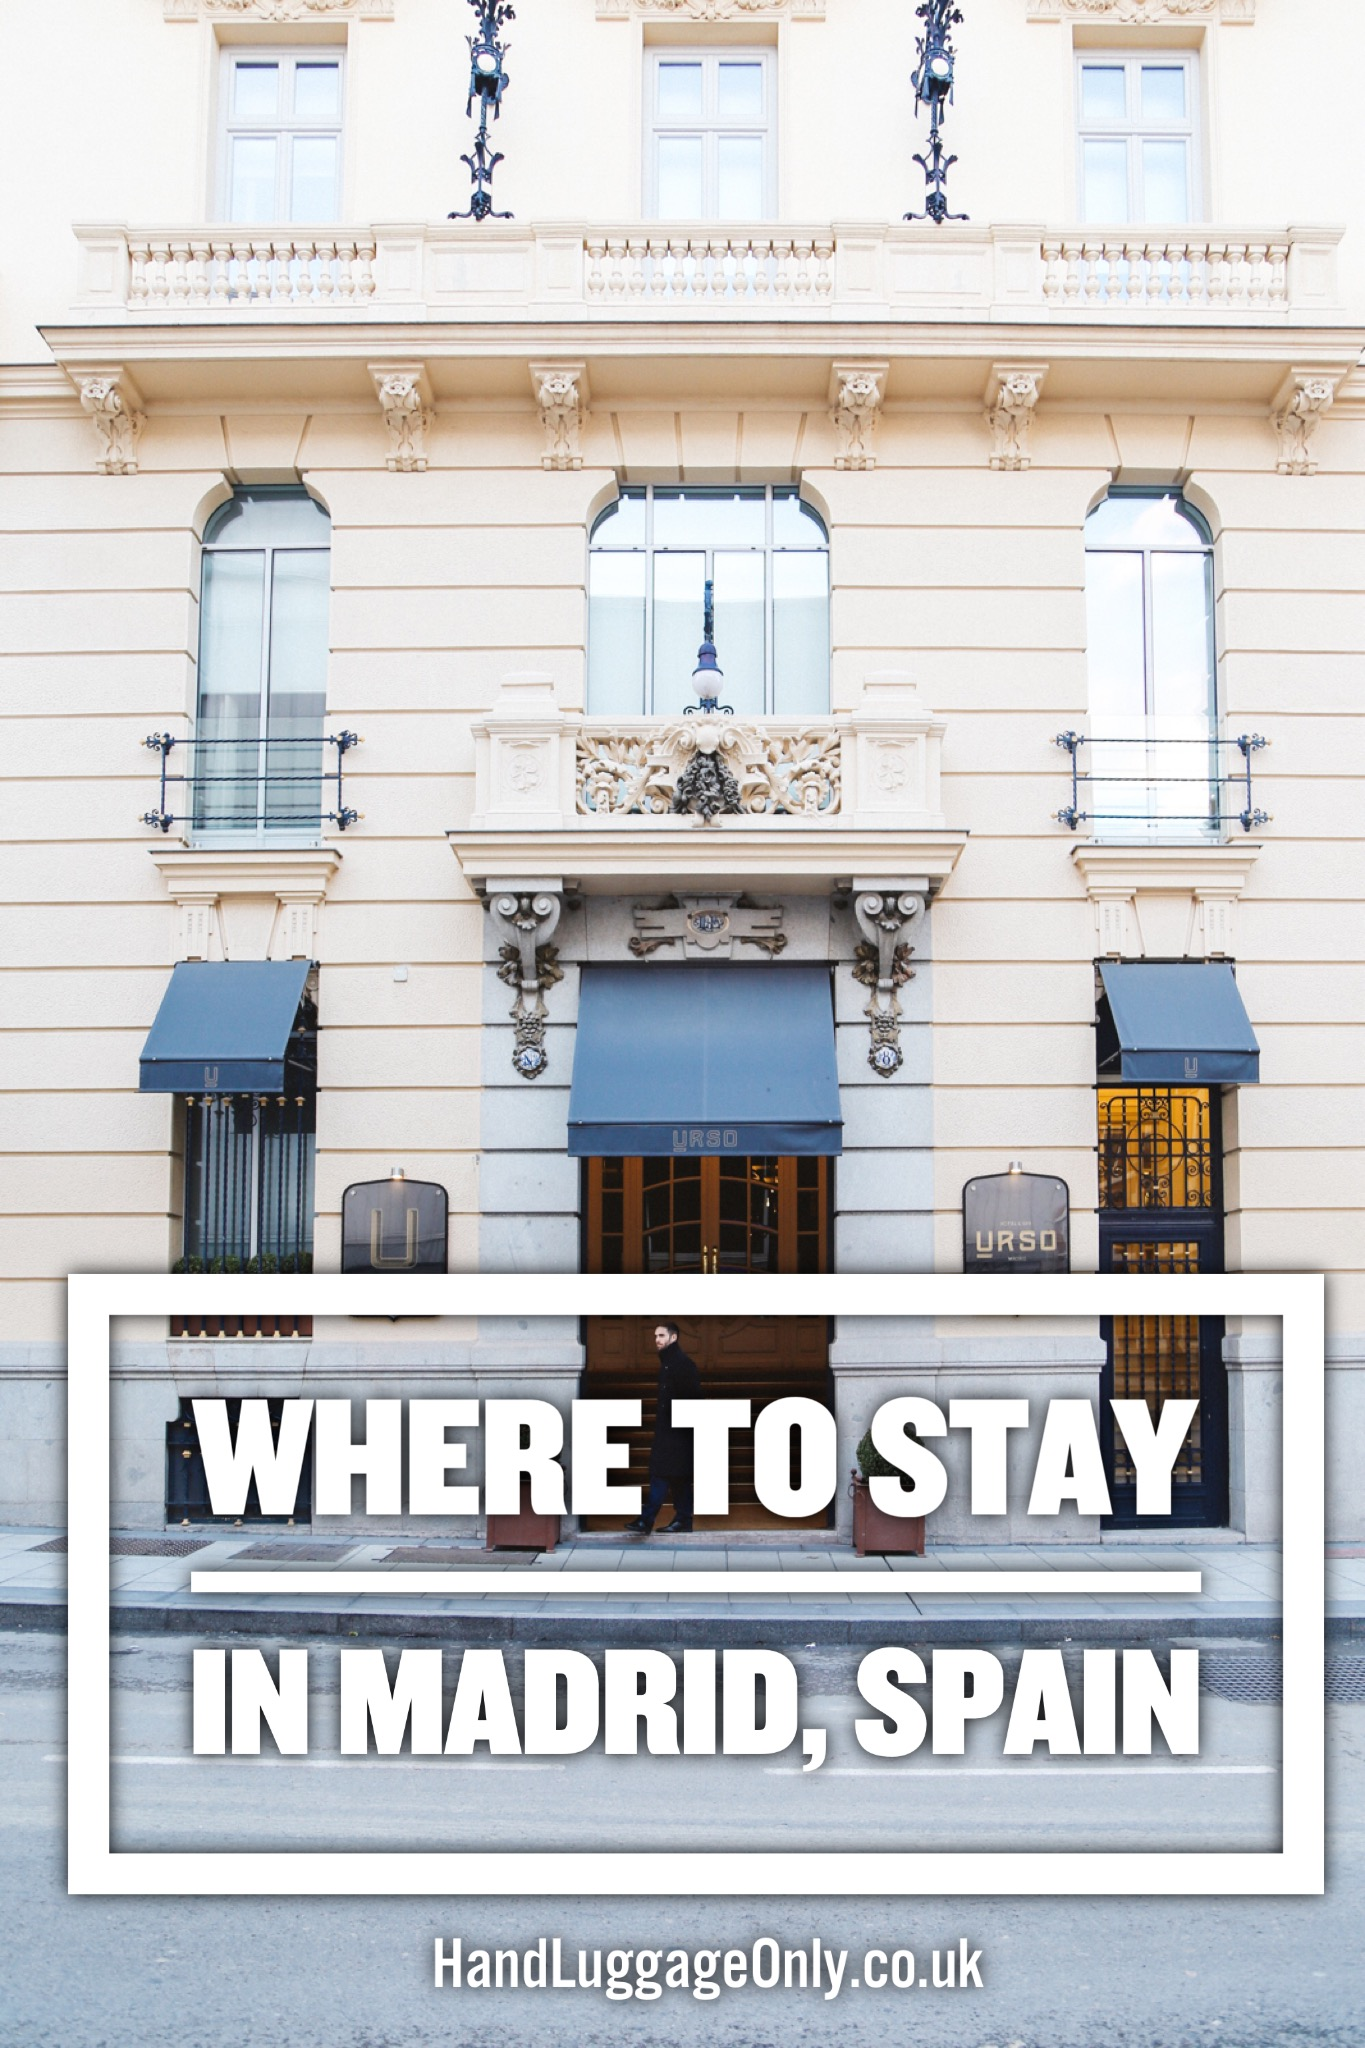 MY RECOMMENDATION FOR WHERE TO STAY IN MADRID